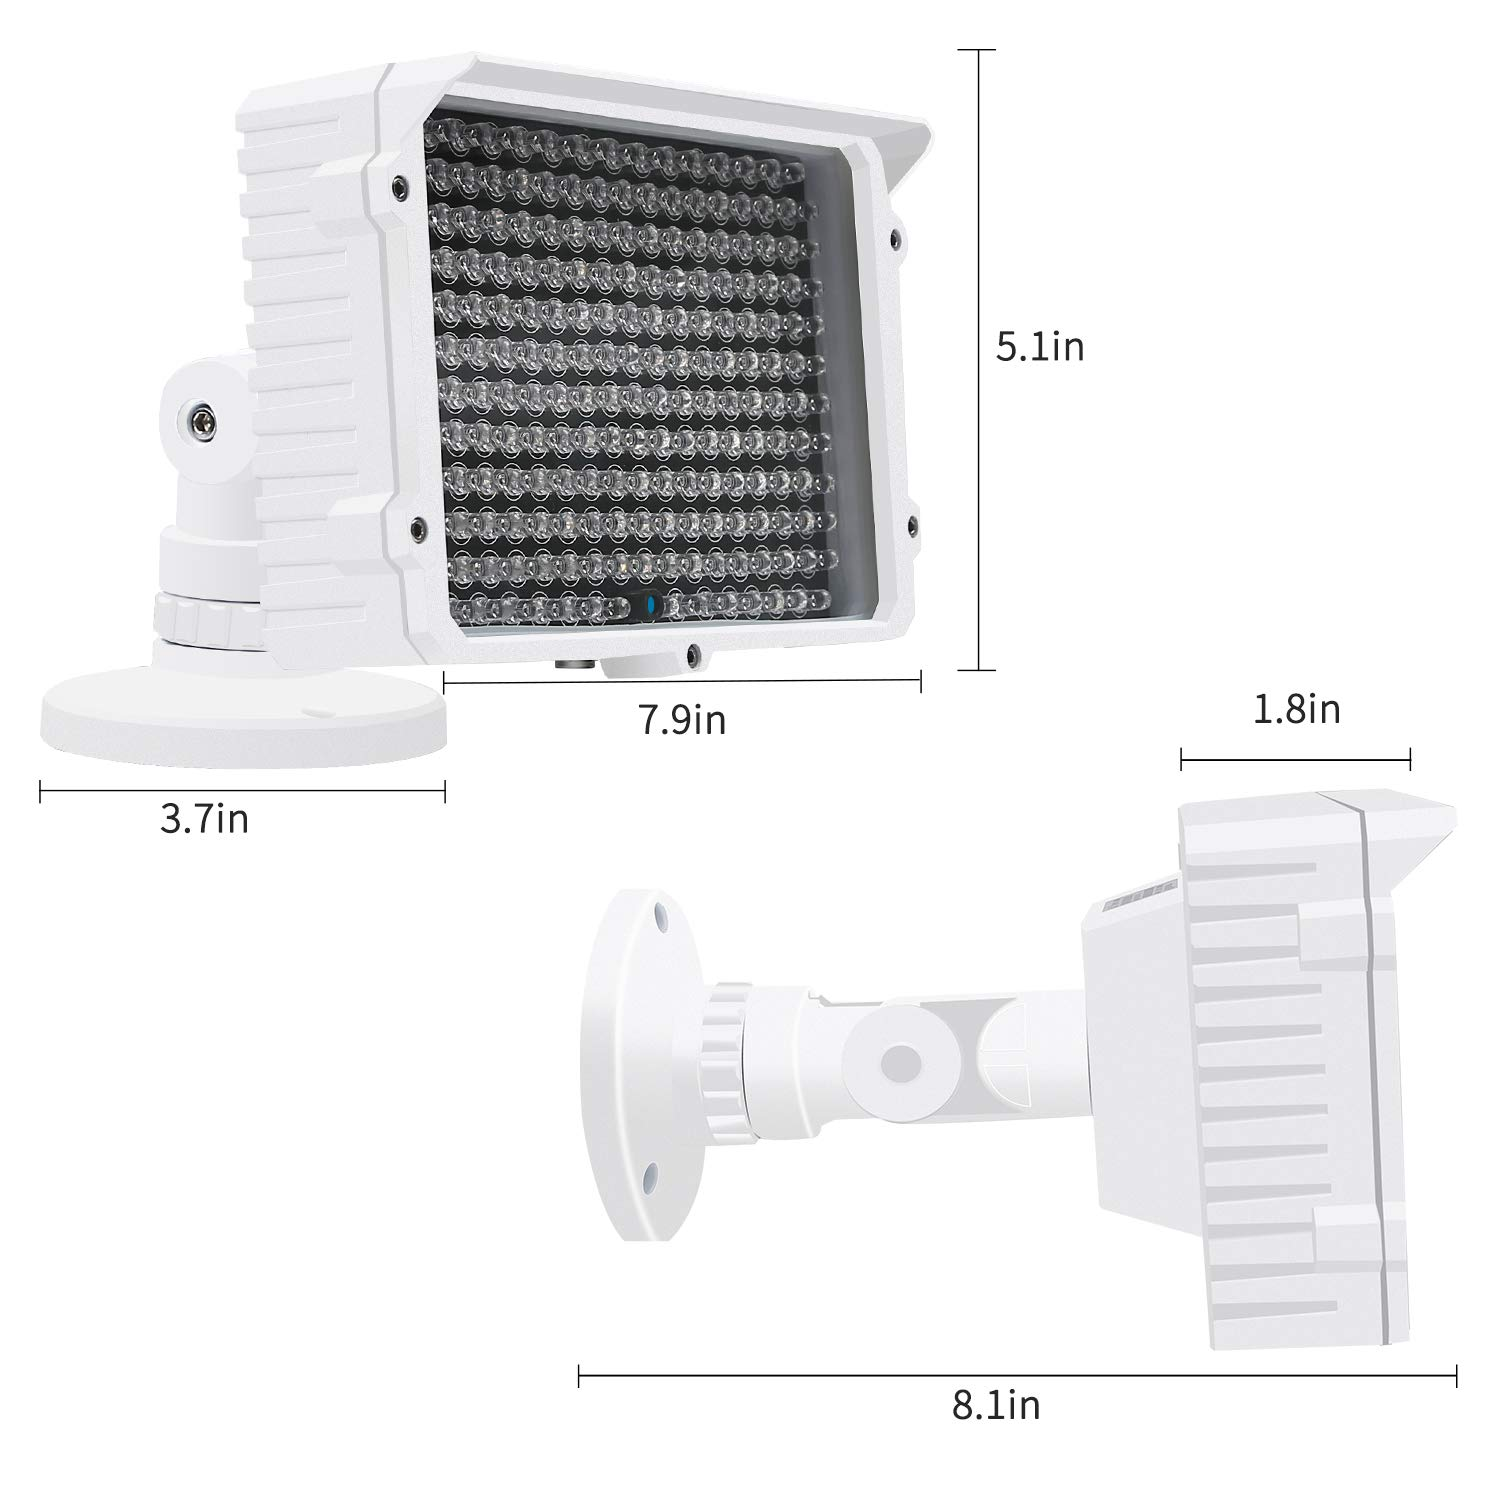 CMVision IR130-830NM - 198 LED Indoor/Outdoor Long Range 150 feet IR Illuminator with Free 3A 12VDC Power Adaptor (Special for photobiomodulation, Light Therapy Application) by CMVision (Image #4)